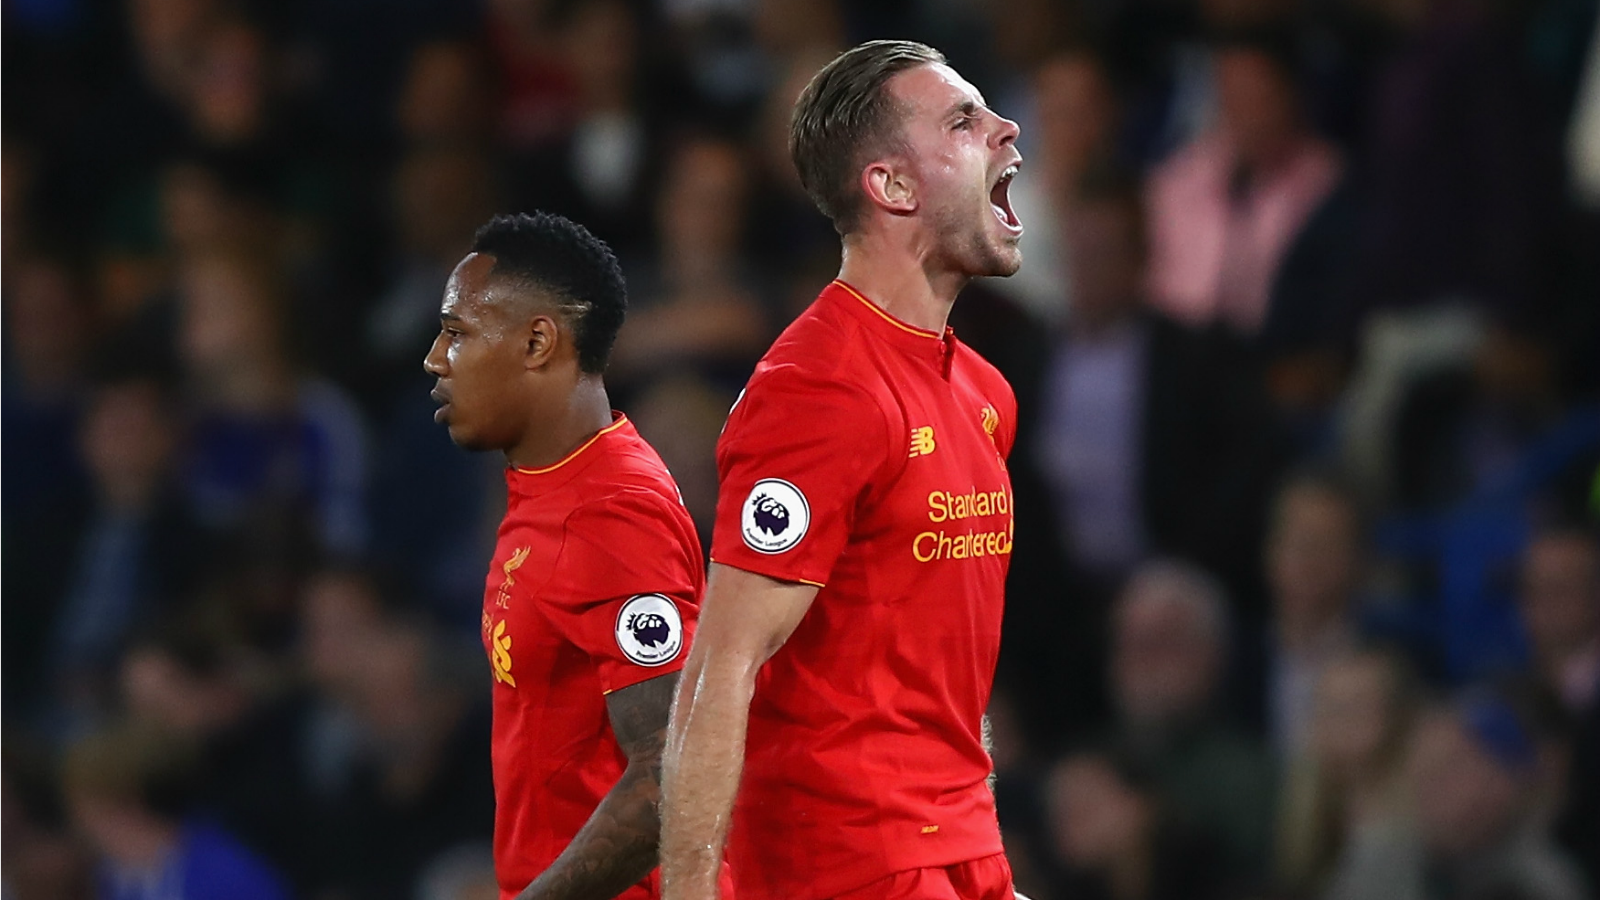 Watch Jordan Henderson's absurdly perfect 25-yard goal